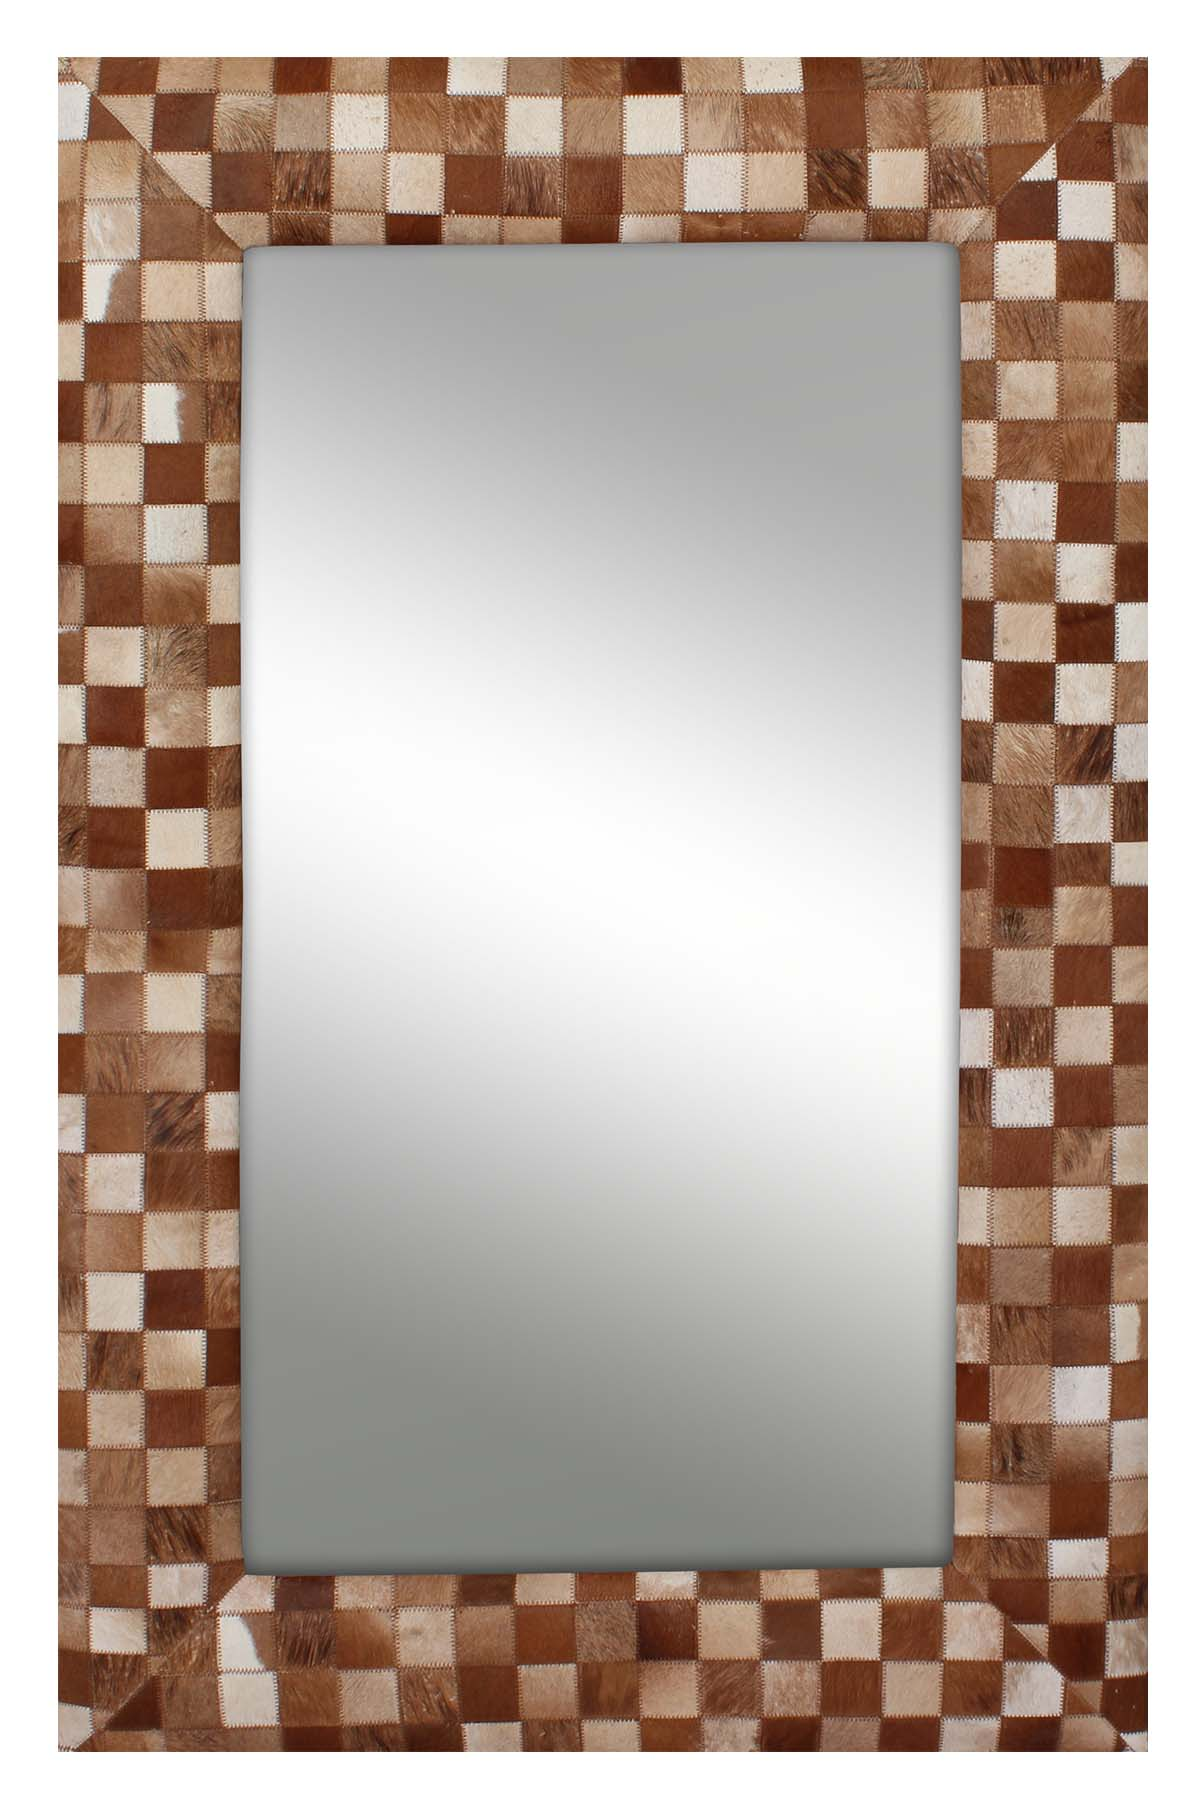 Buy mirror frame online in india at best prices for A frame cost